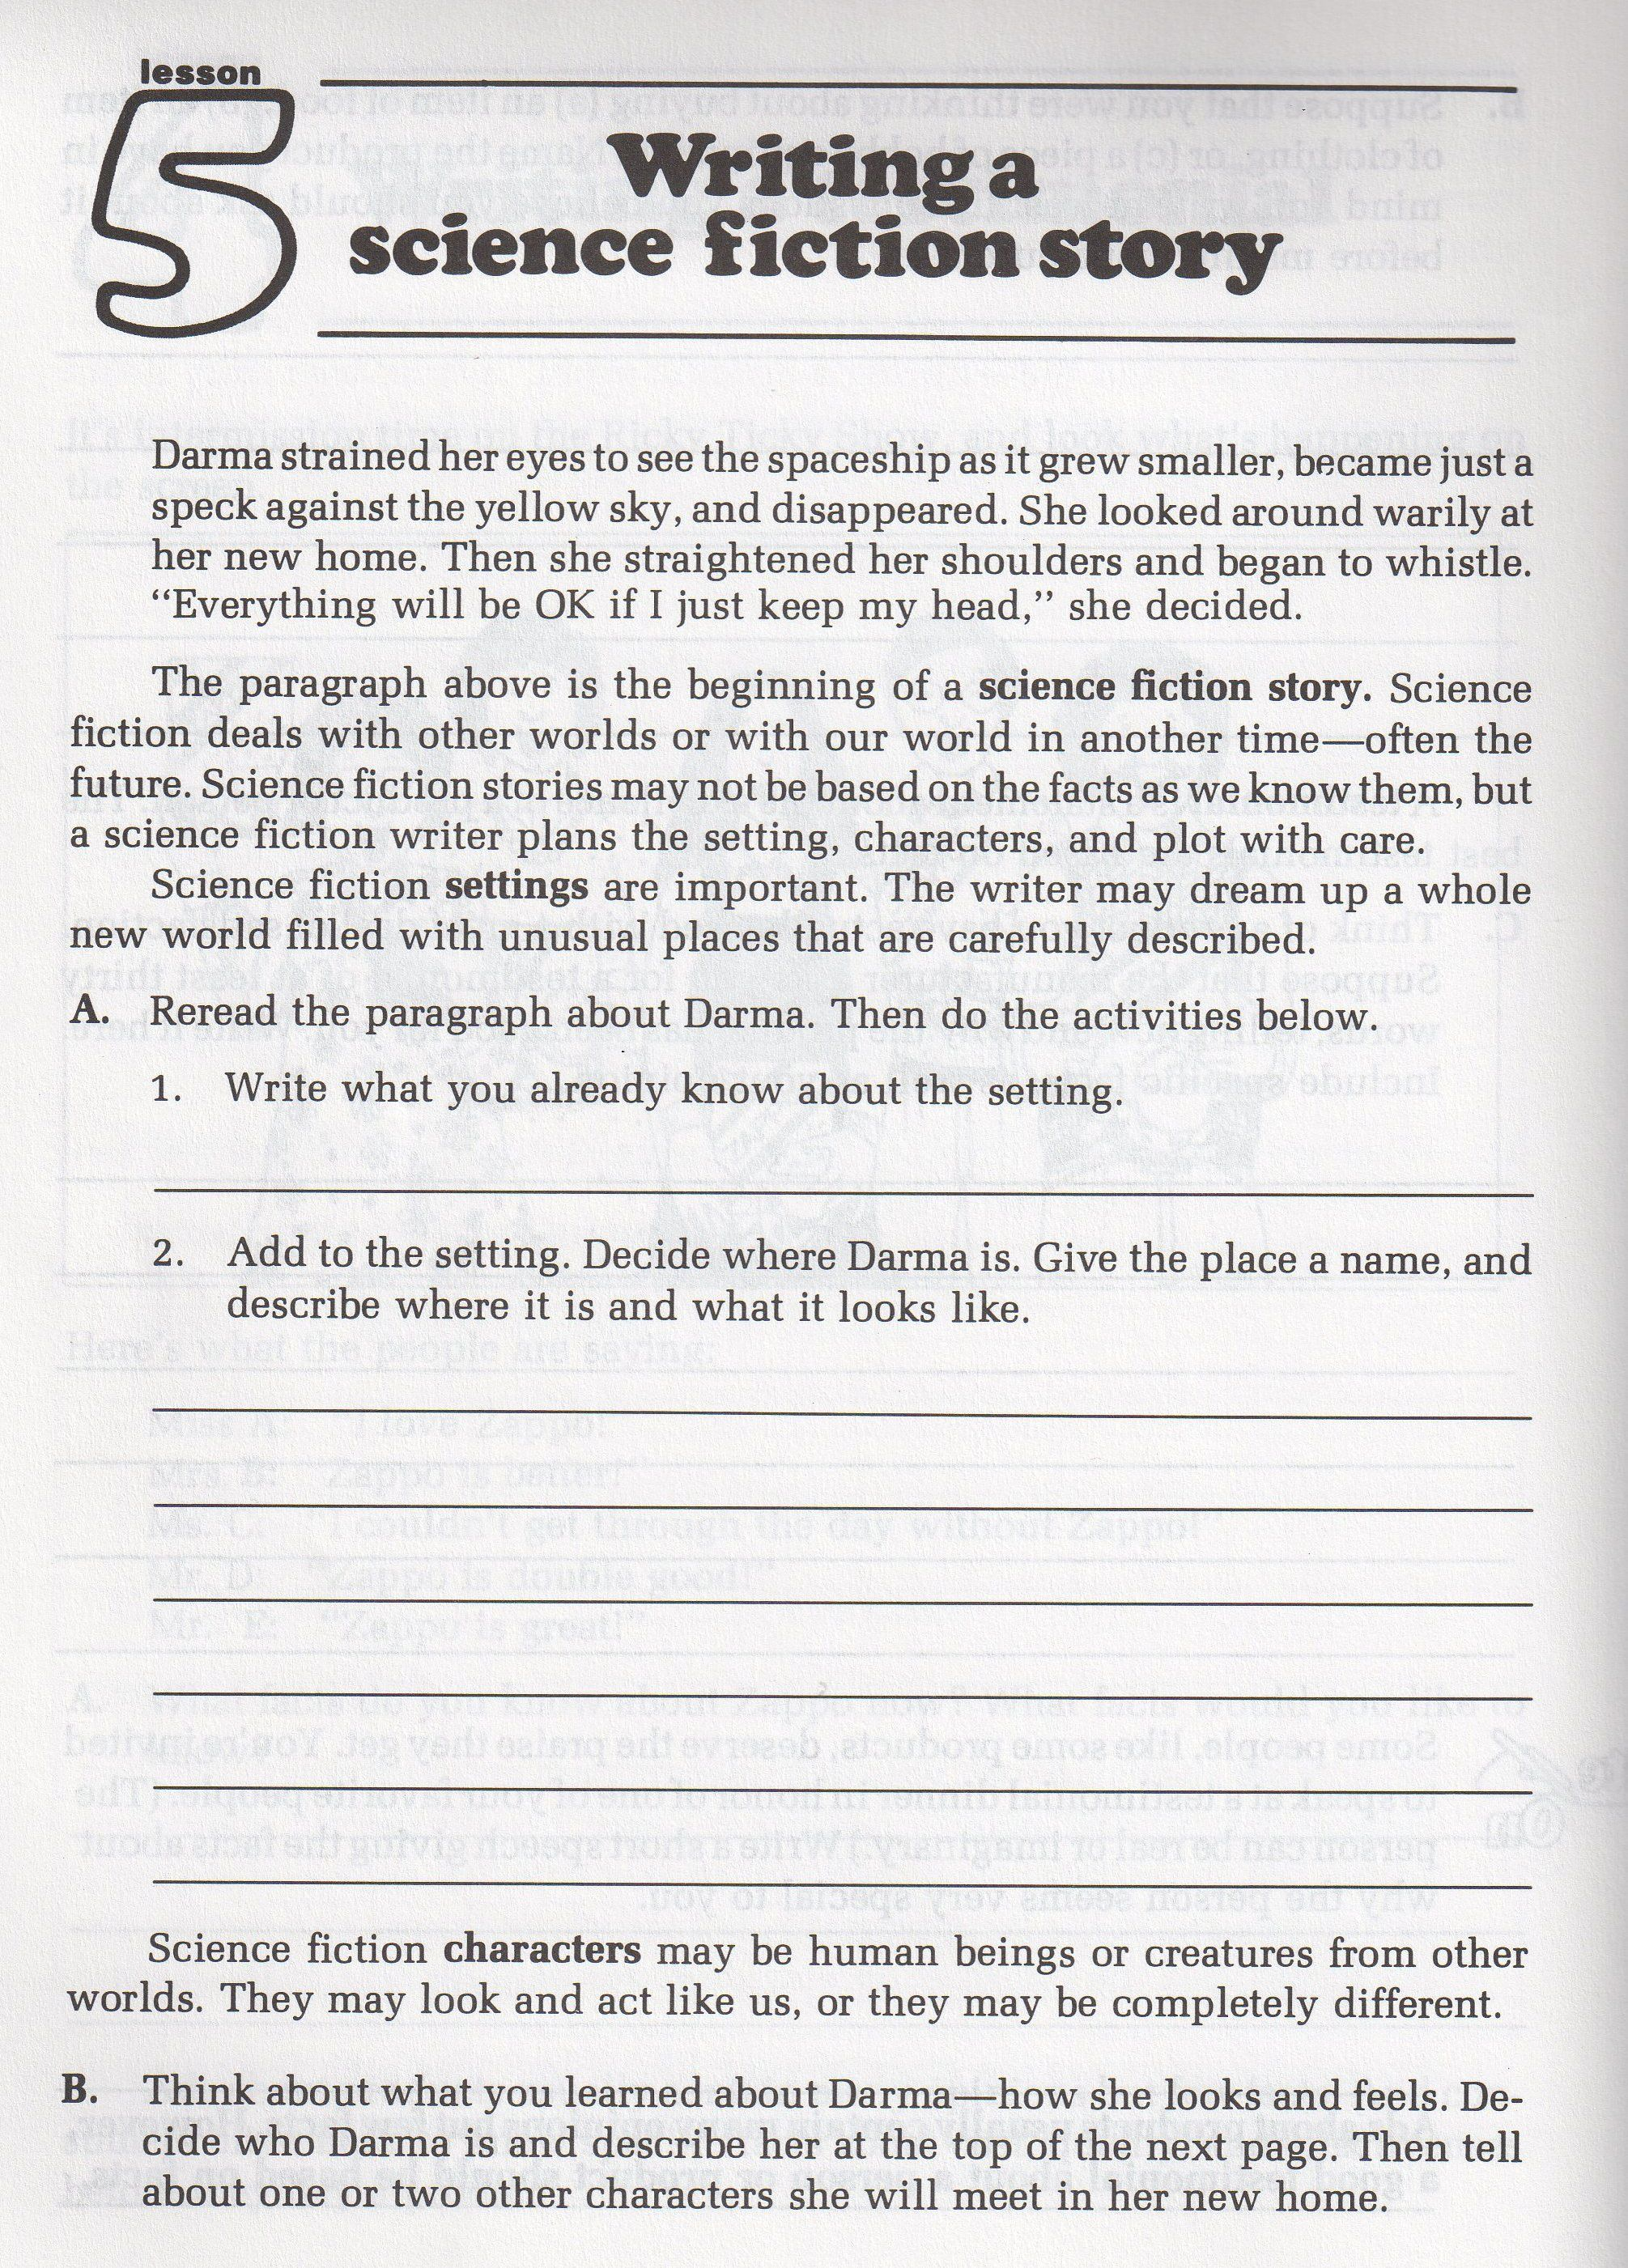 Worksheet Elements Science Fiction Worksheet Best Free